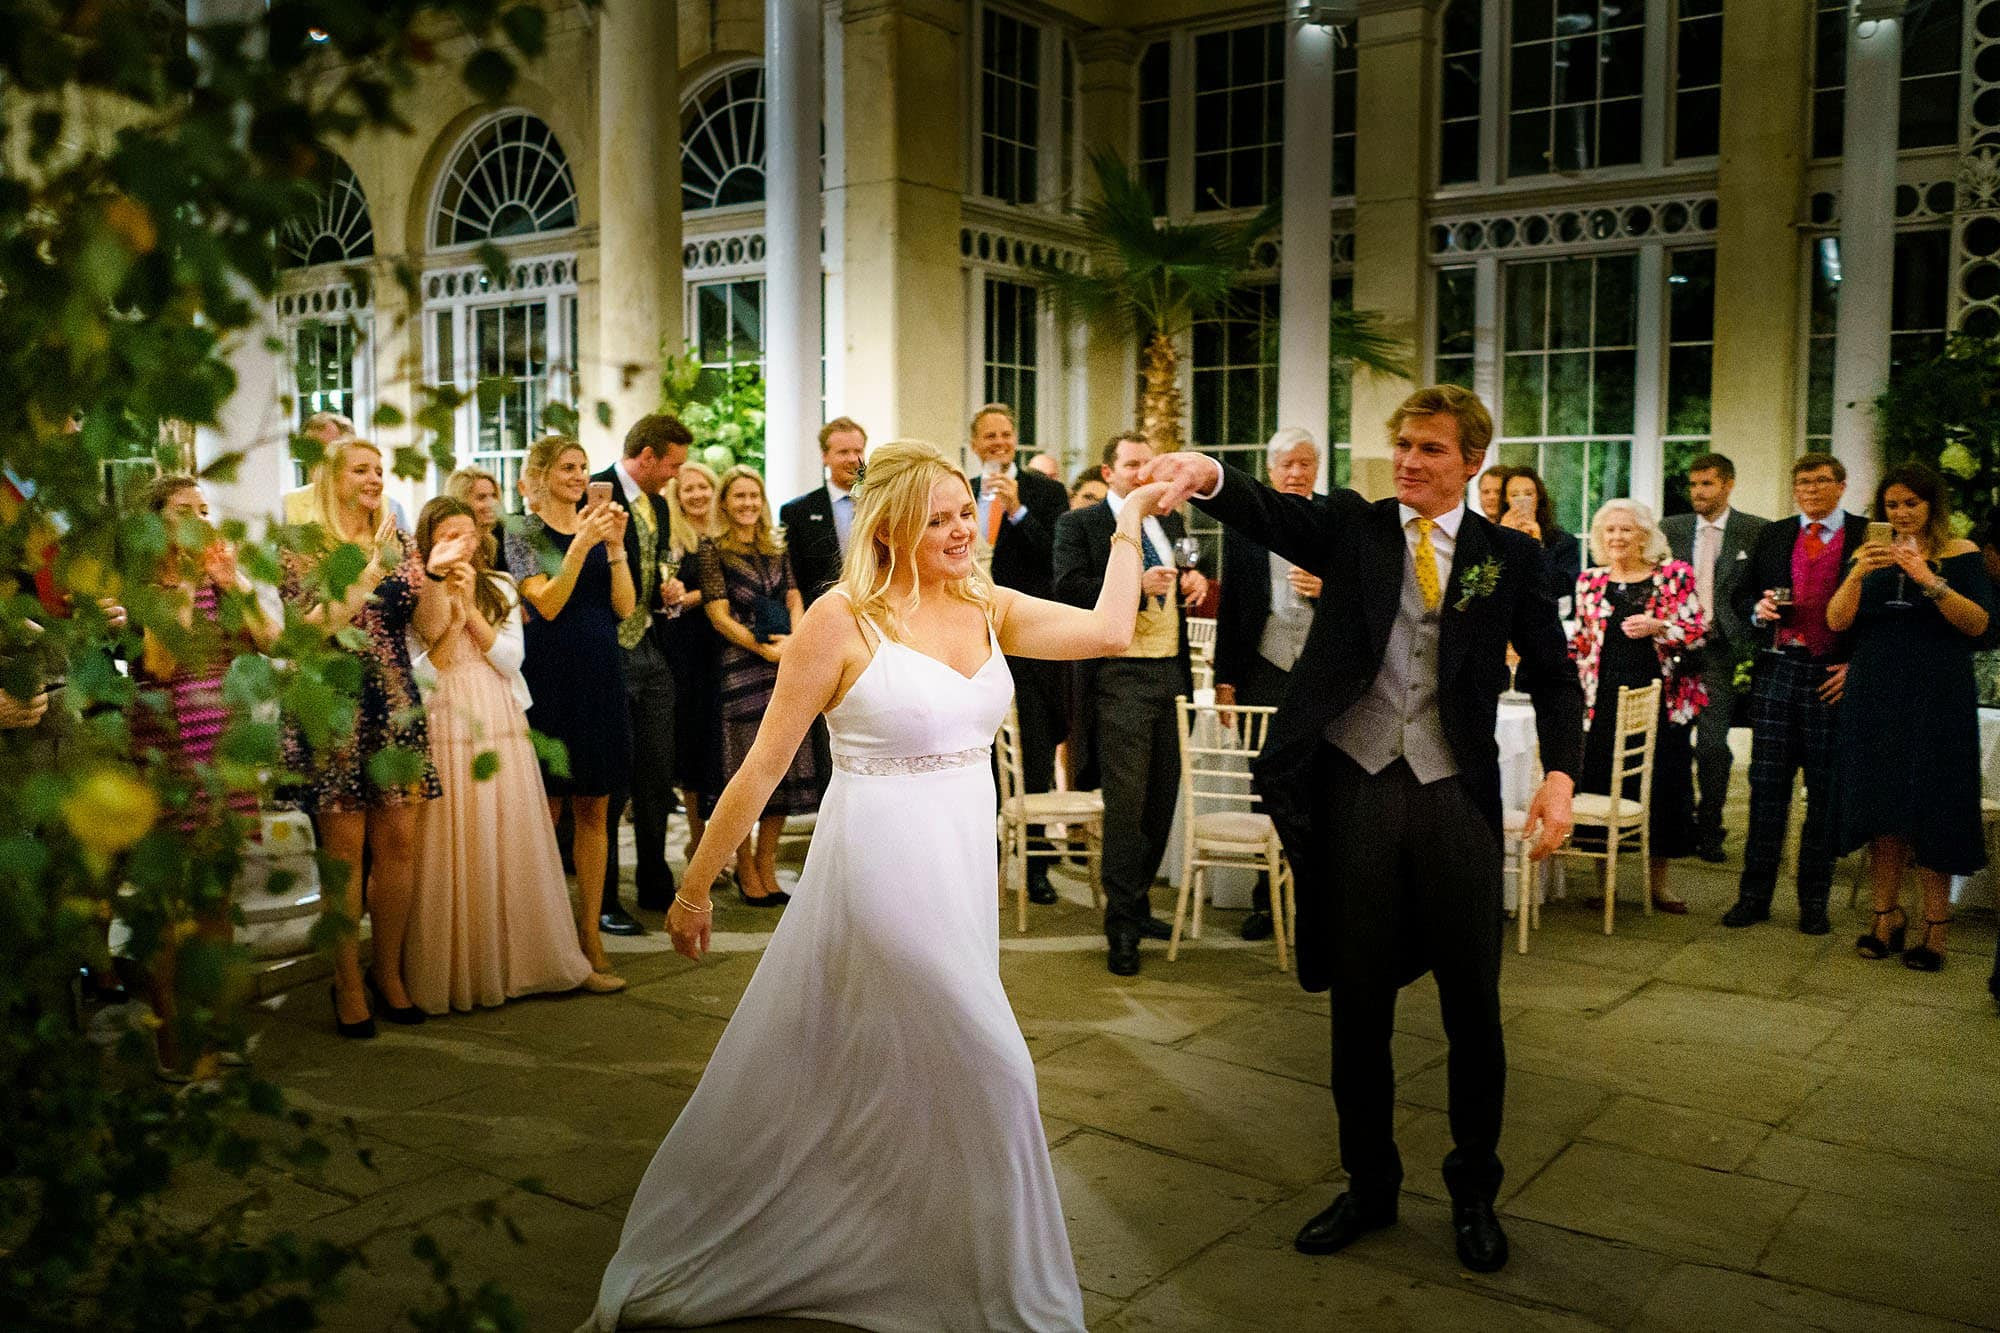 Syon park wedding dancing